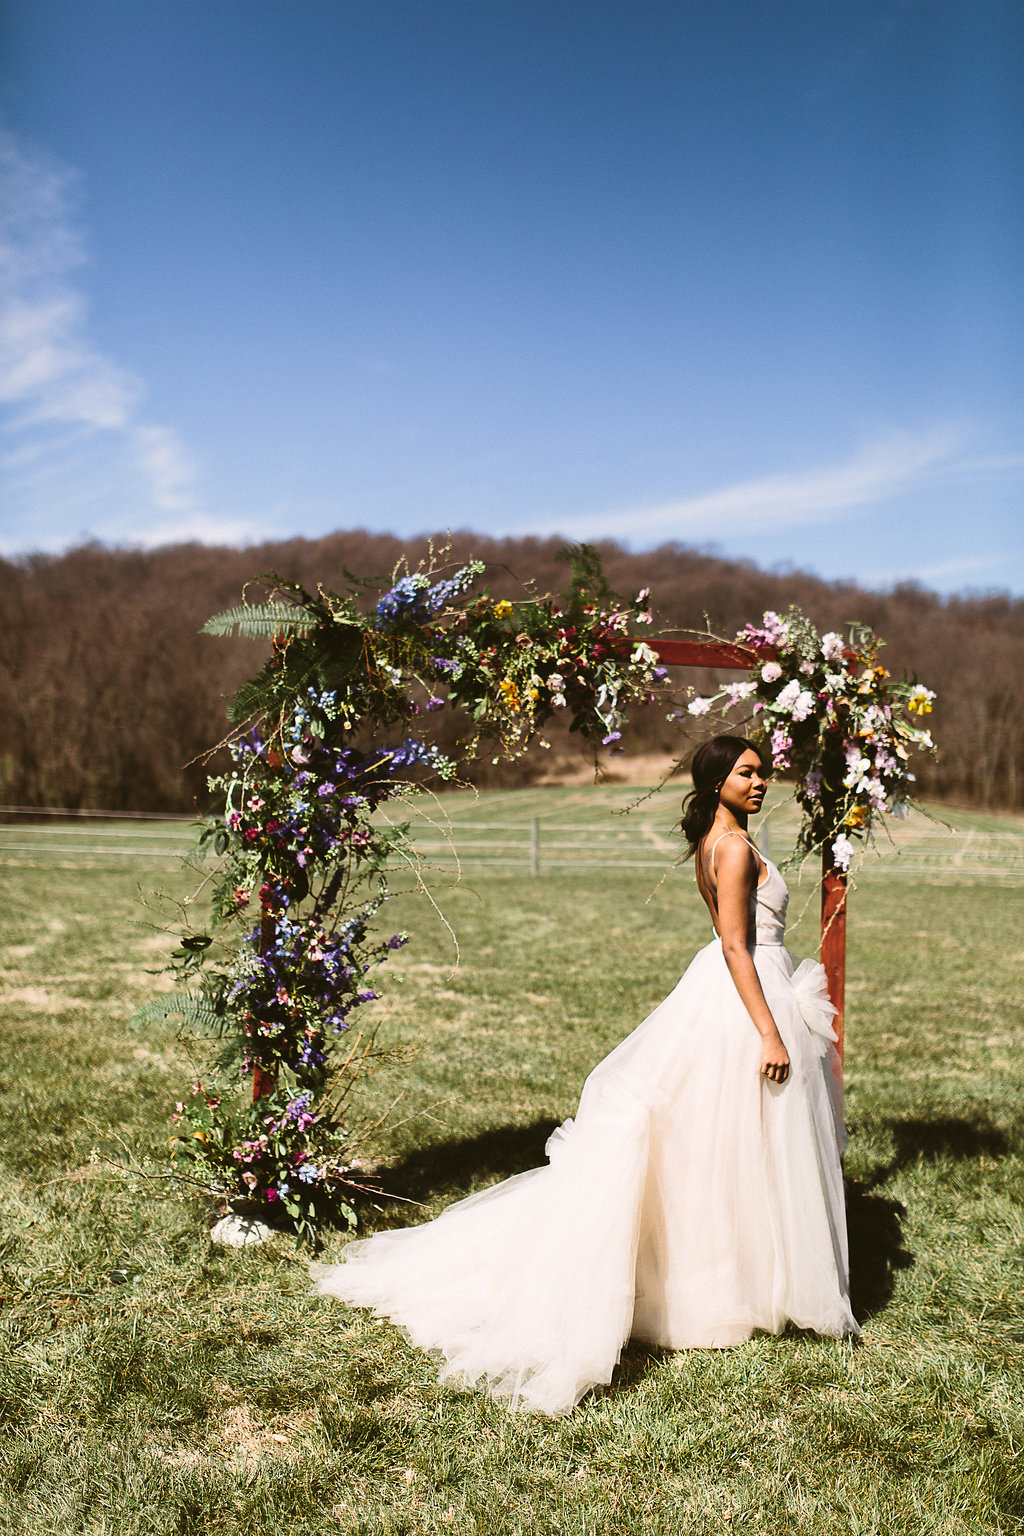 Darling and Daughters Florals, Baltimore, Washington DC, Events, Monthly, Flower Subscriptions, Small Events,  Custom Flowers, Cedar Farm-81.jpg